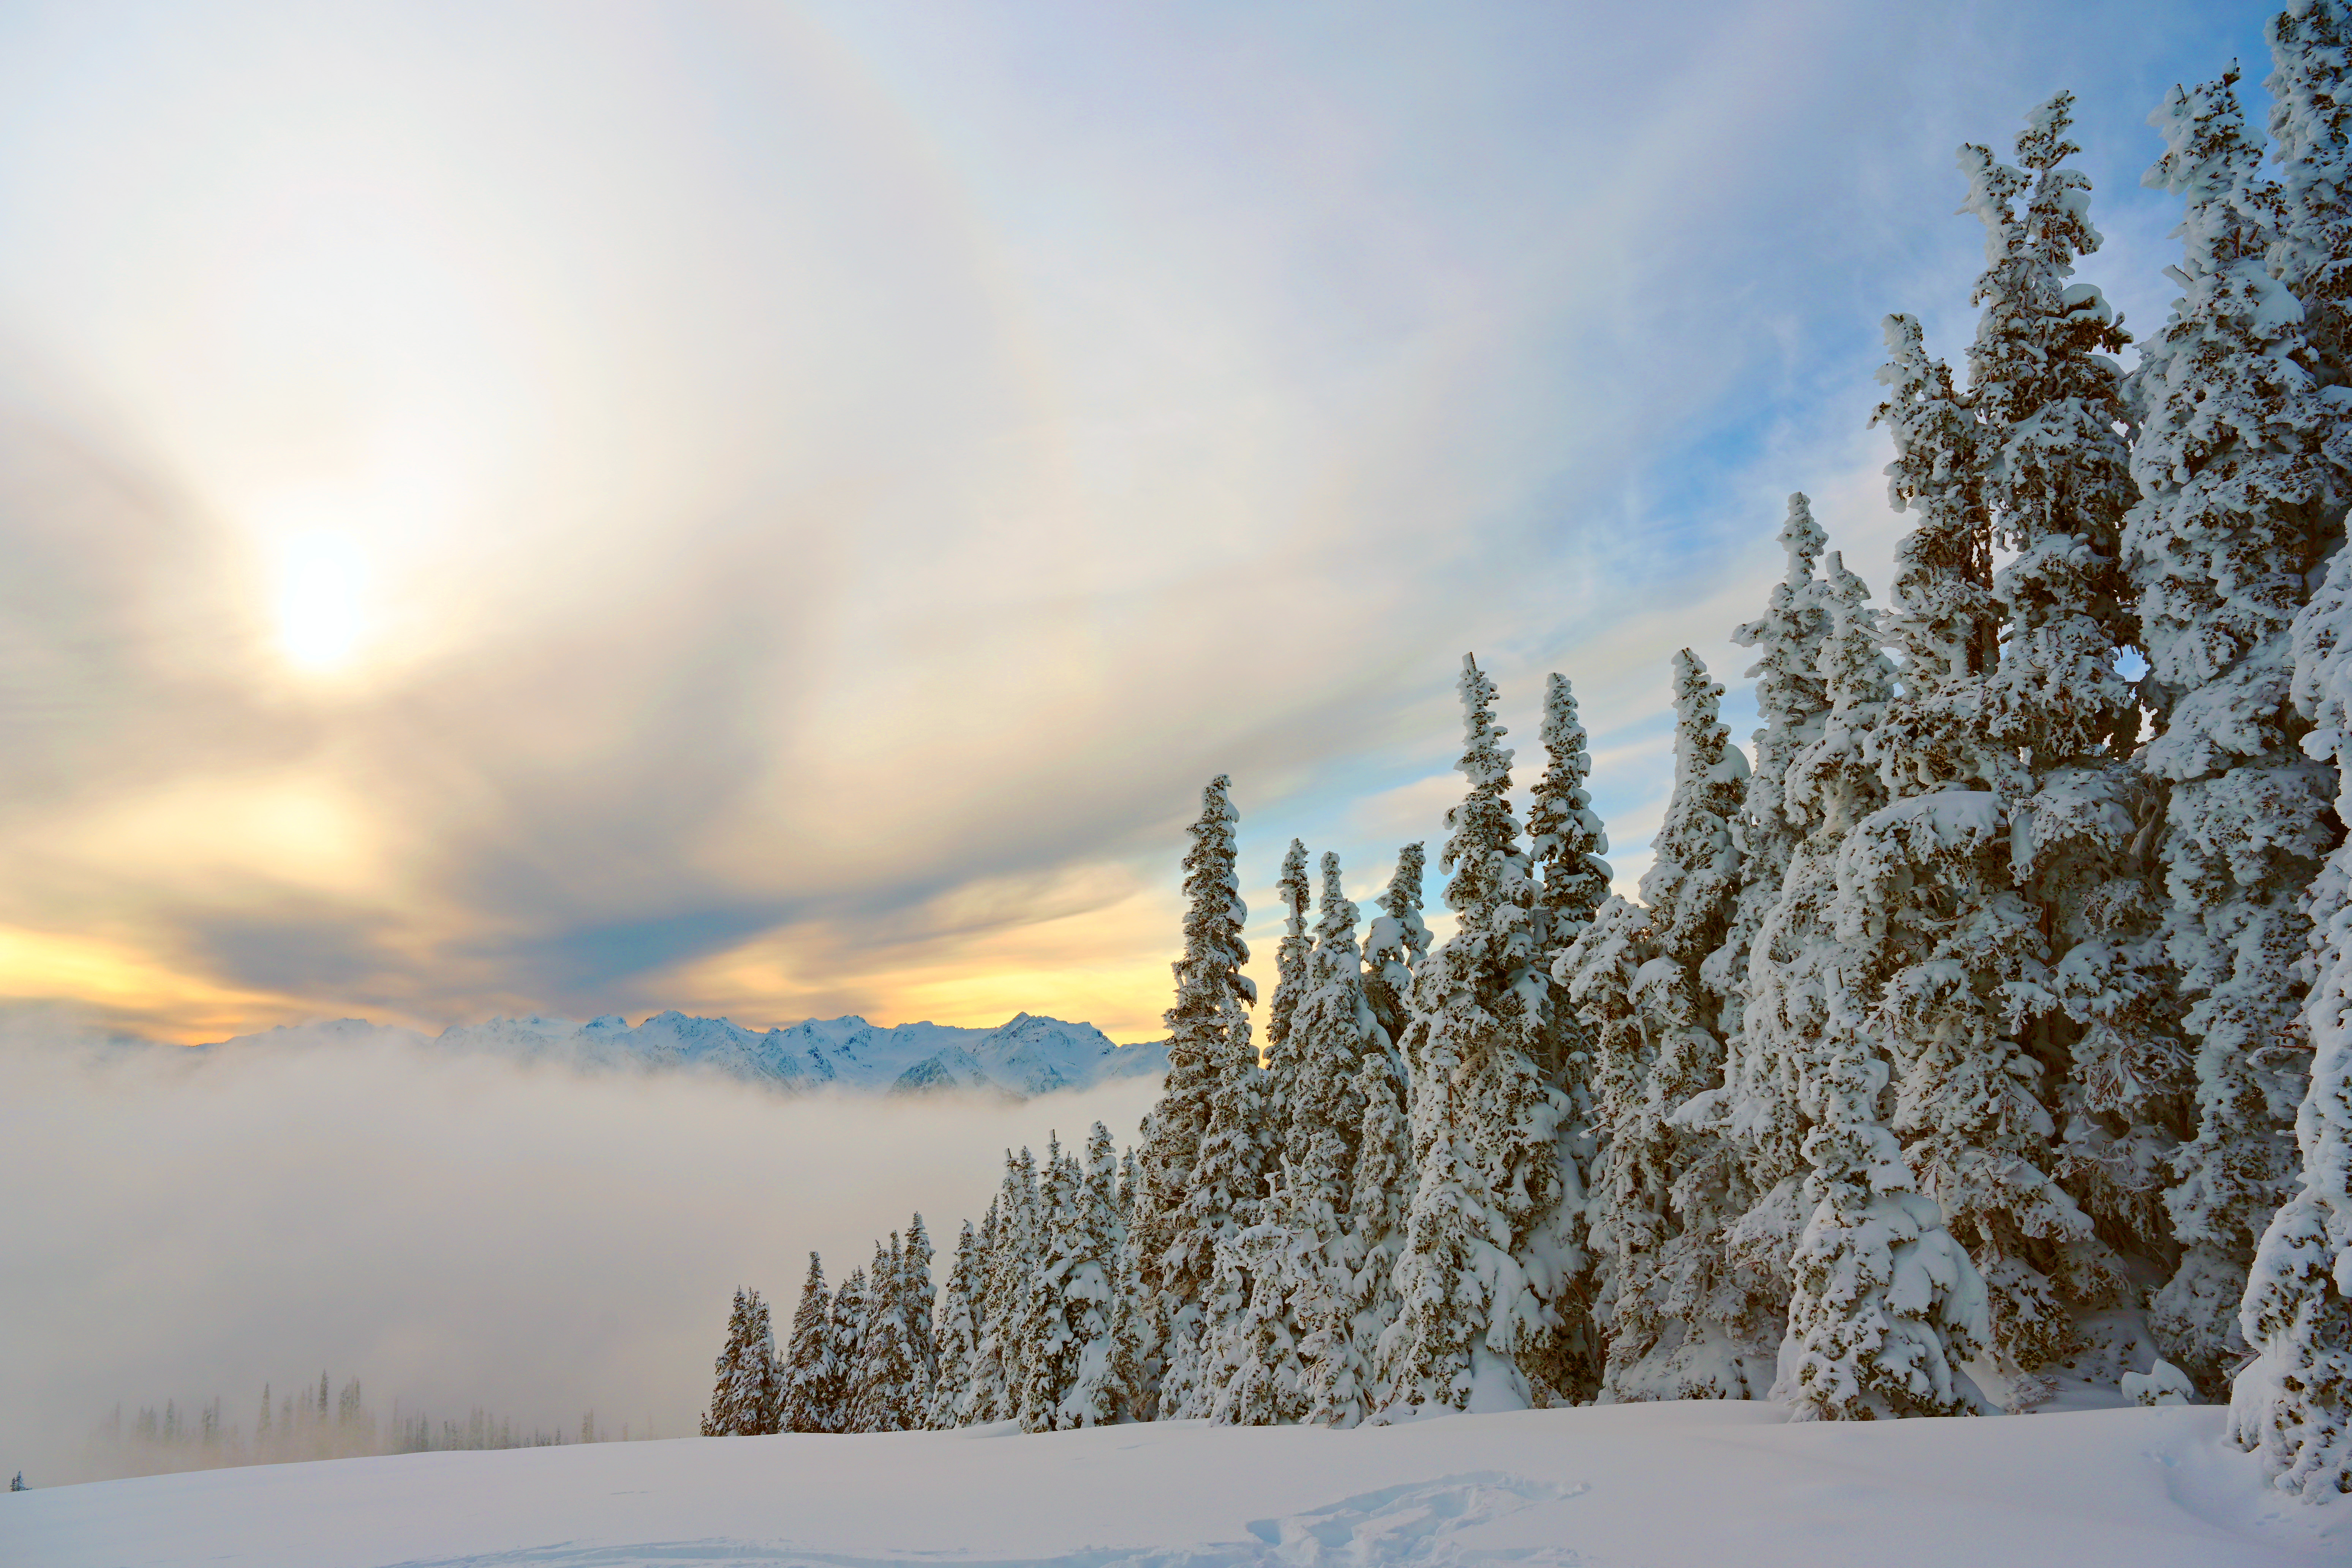 143931 download wallpaper Nature, Spruce, Fir, Trees, Snow, Snow Covered, Snowbound, Mountains screensavers and pictures for free